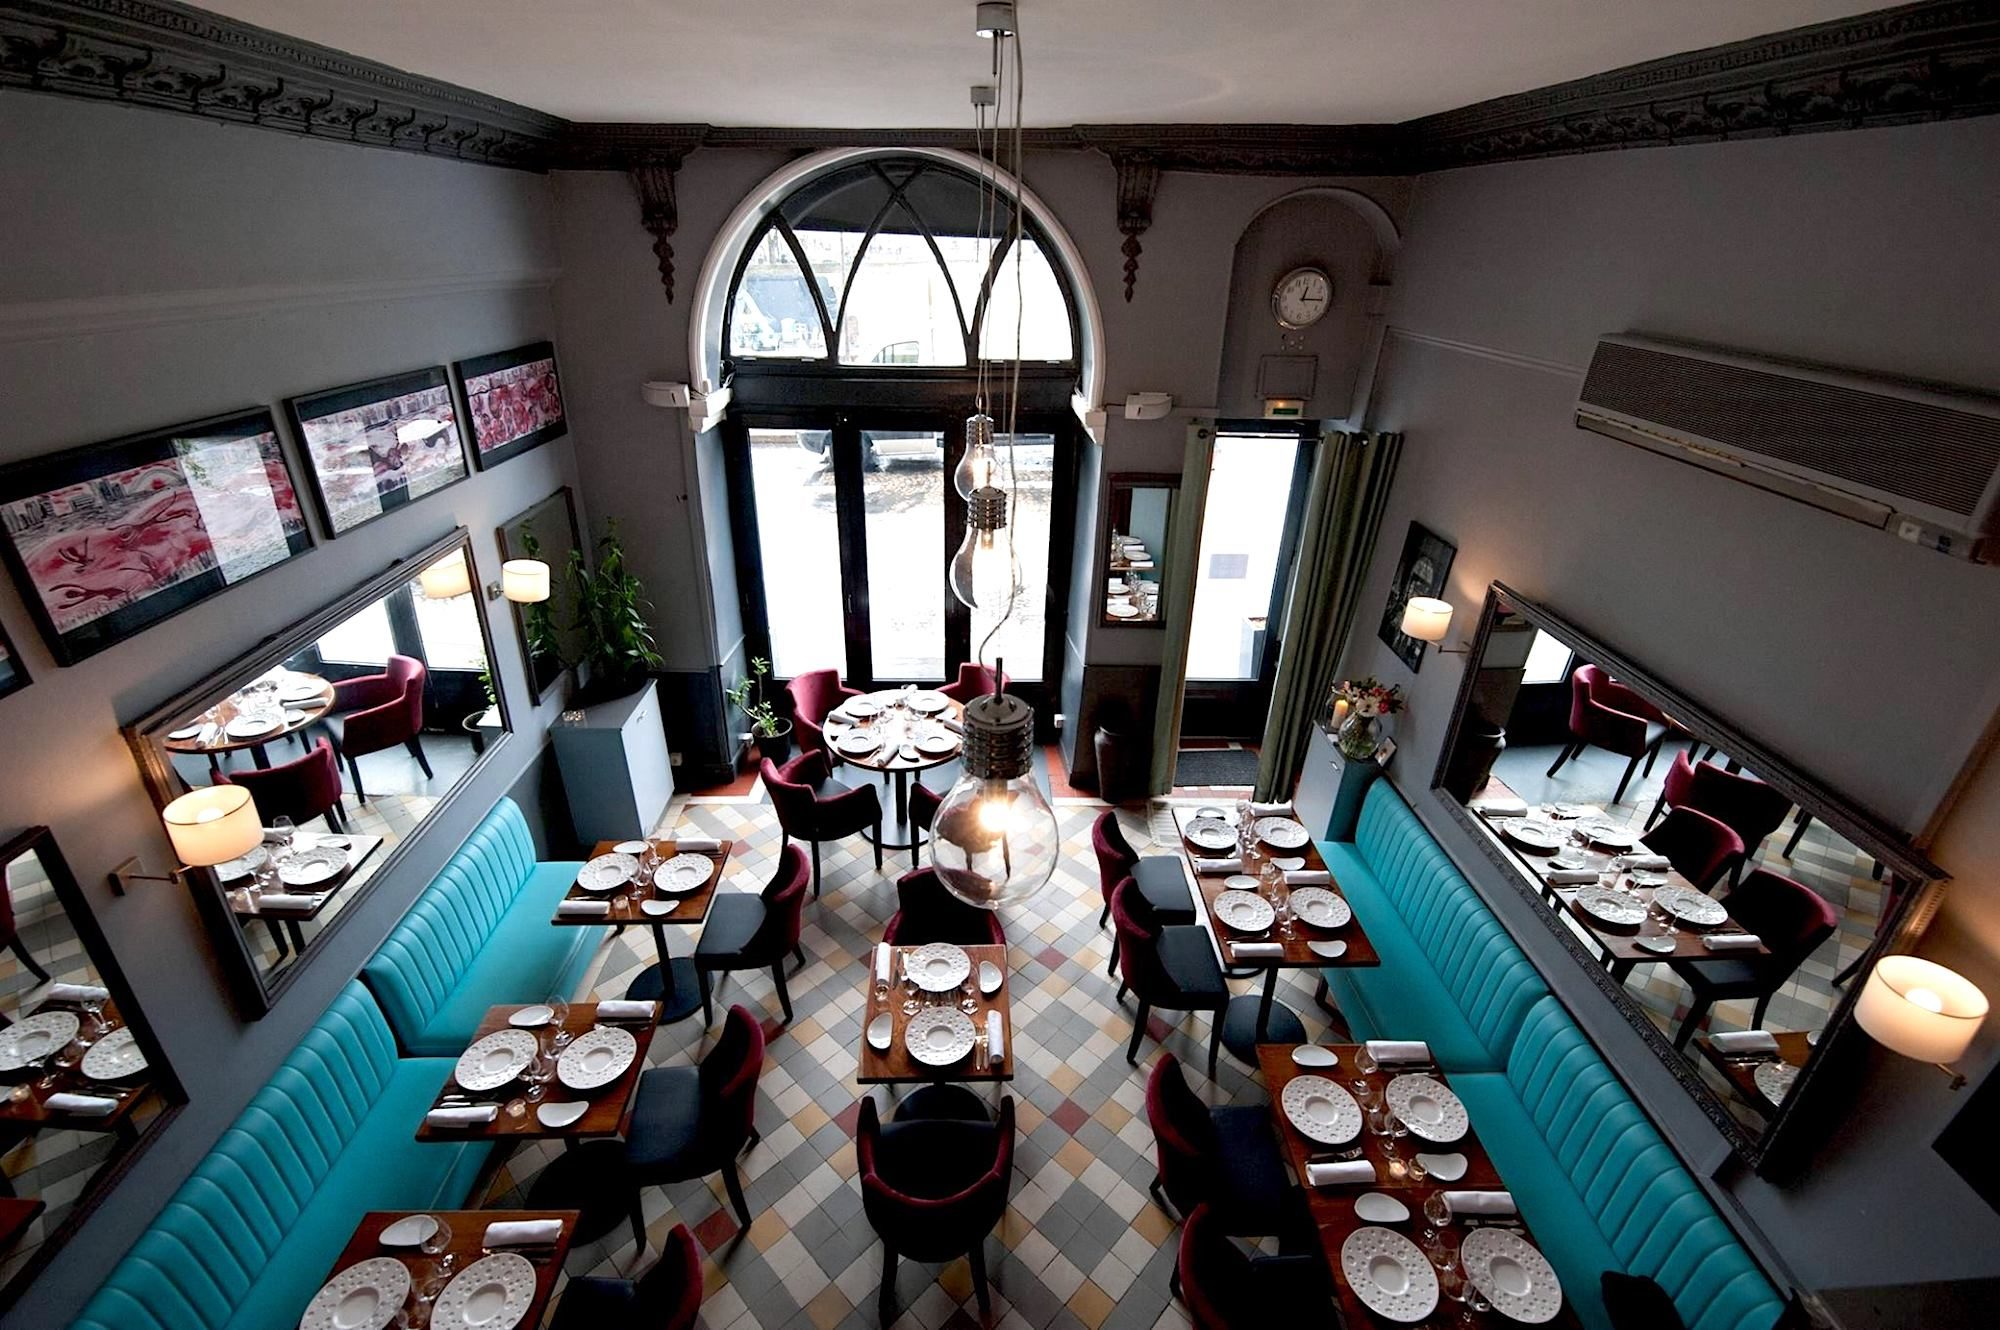 Sequana is a great restaurant for modern French food near Paris' Notre Dame Cathedral in St Germain des Près